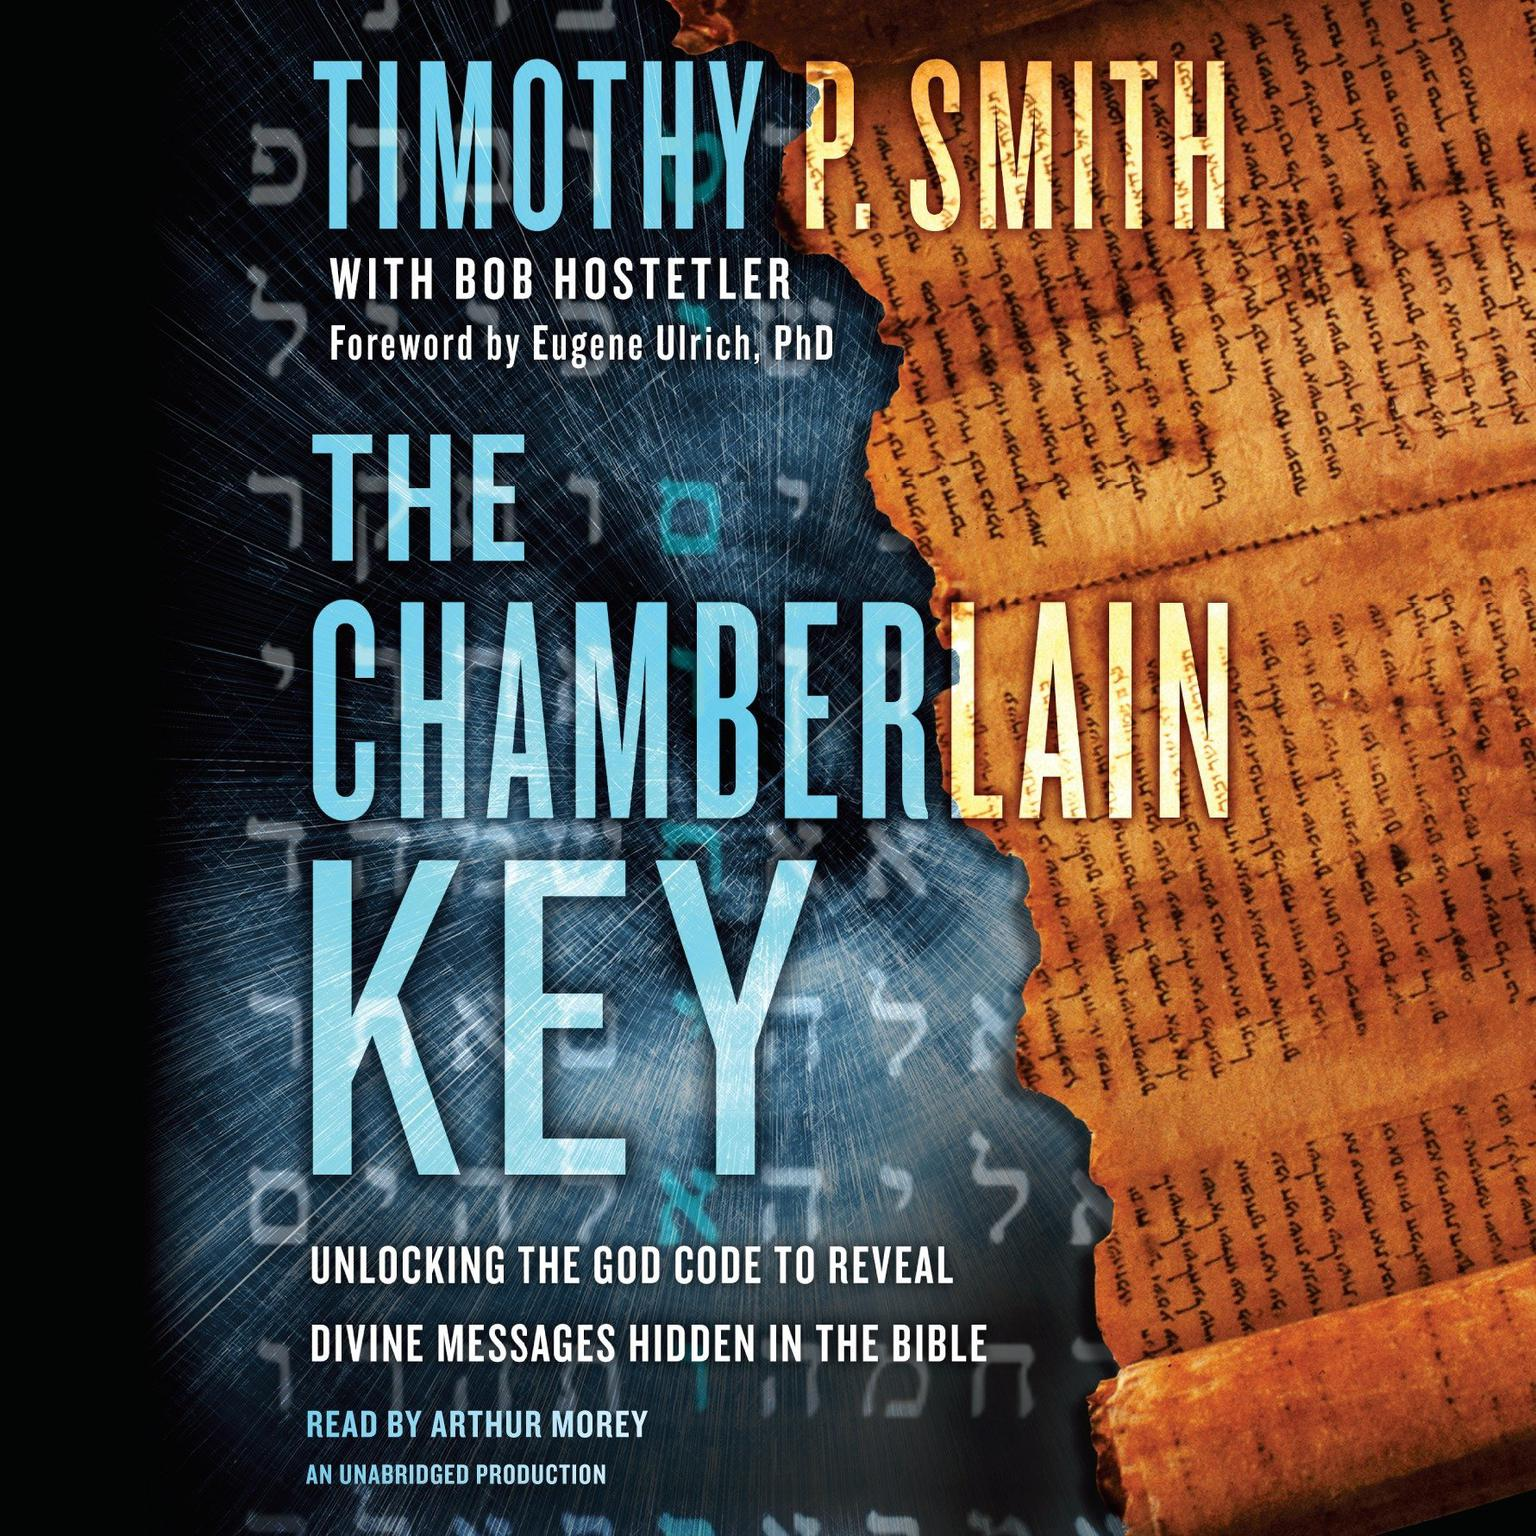 Printable The Chamberlain Key: Unlocking the God Code to Reveal Divine Messages Hidden in the Bible Audiobook Cover Art